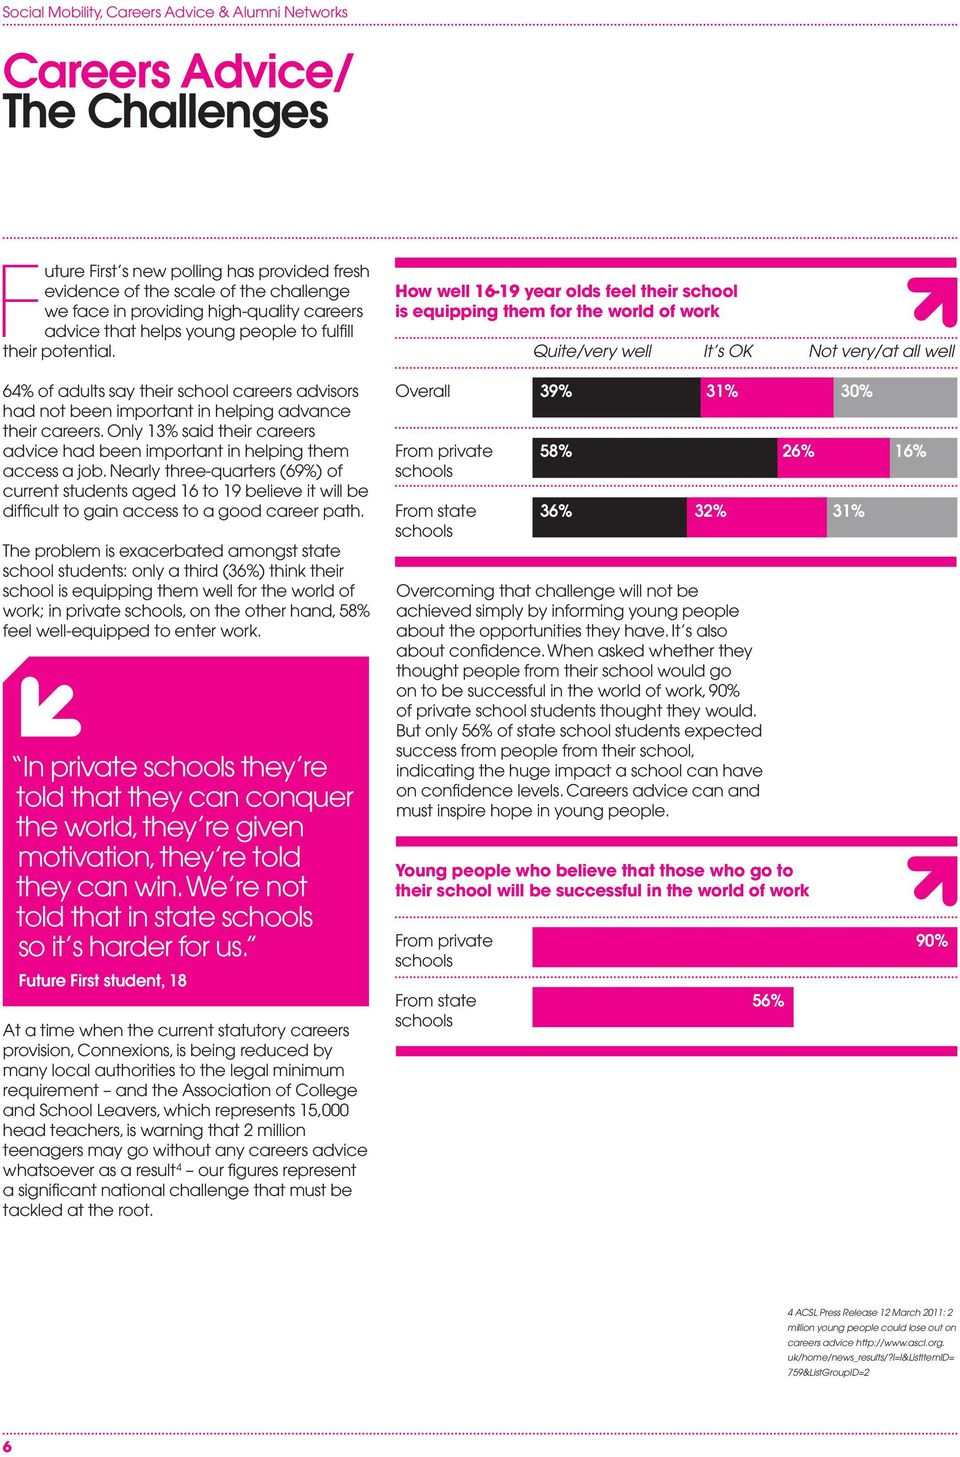 How well 16-19 year olds feel their school is equipping them for the world of work Quite/very well It s OK Not very/at all well 64% of adults say their school careers advisors had not been important